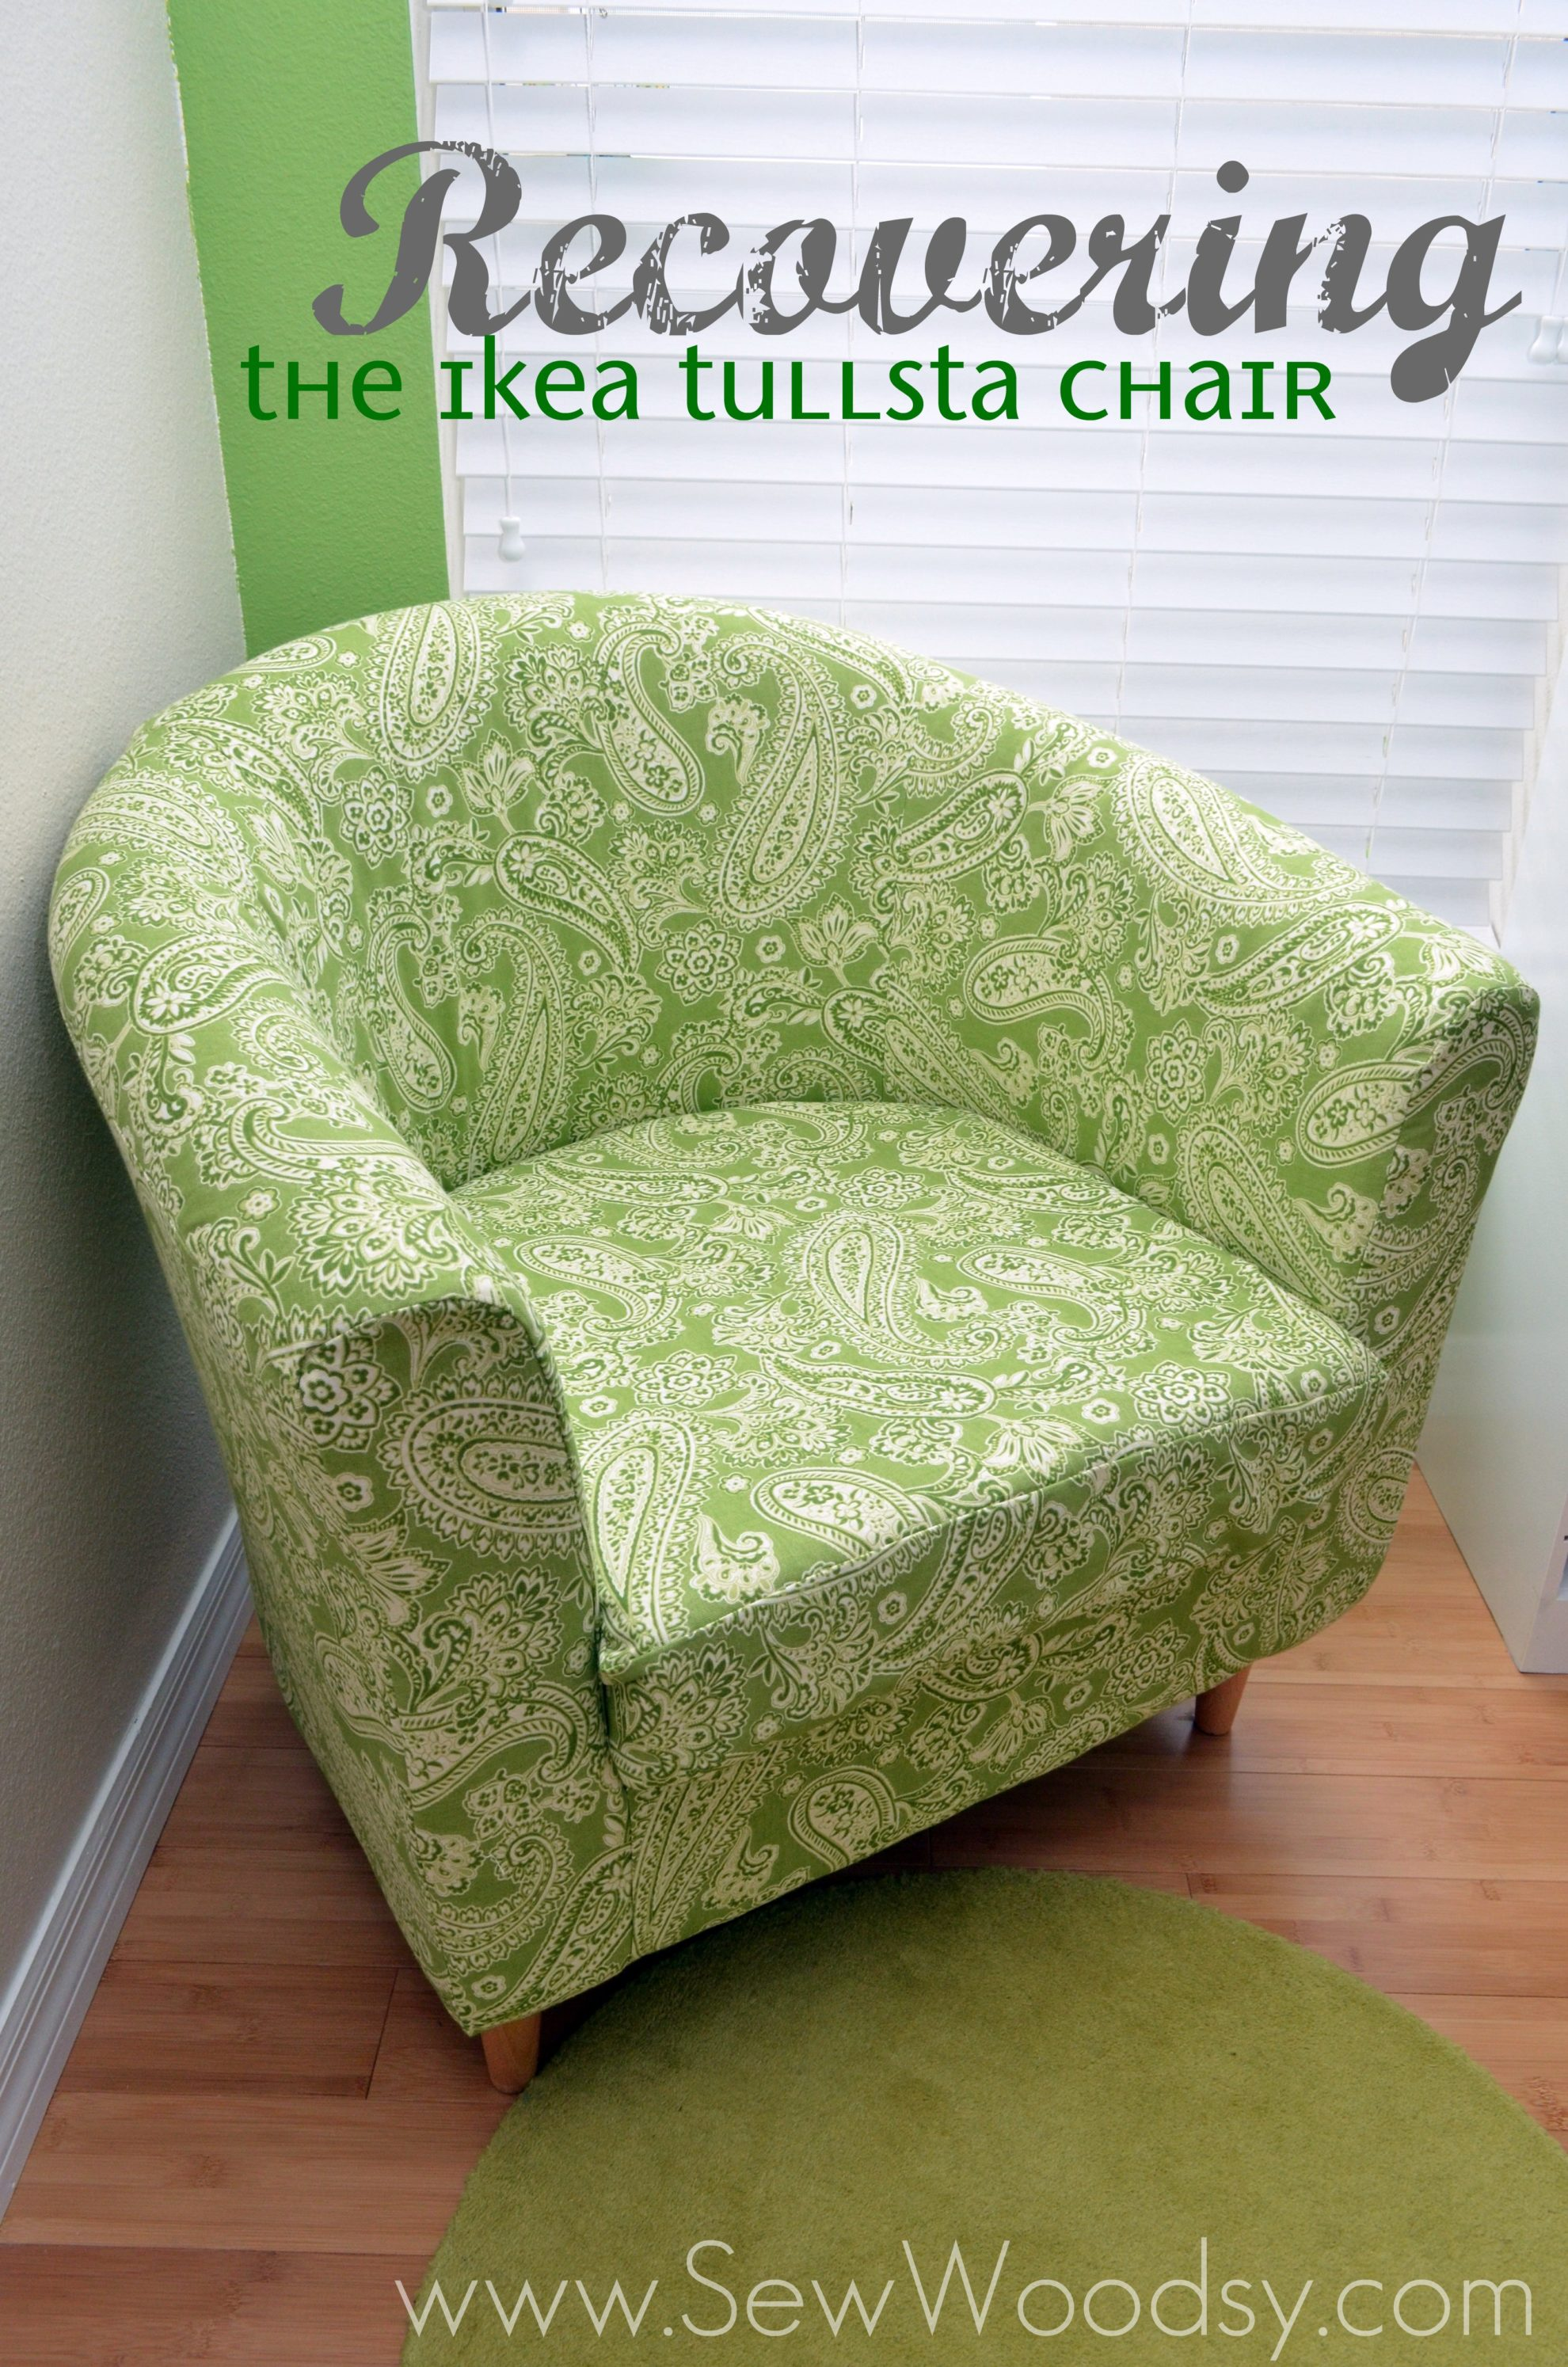 How to Recover the Ikea Tulsta Chair